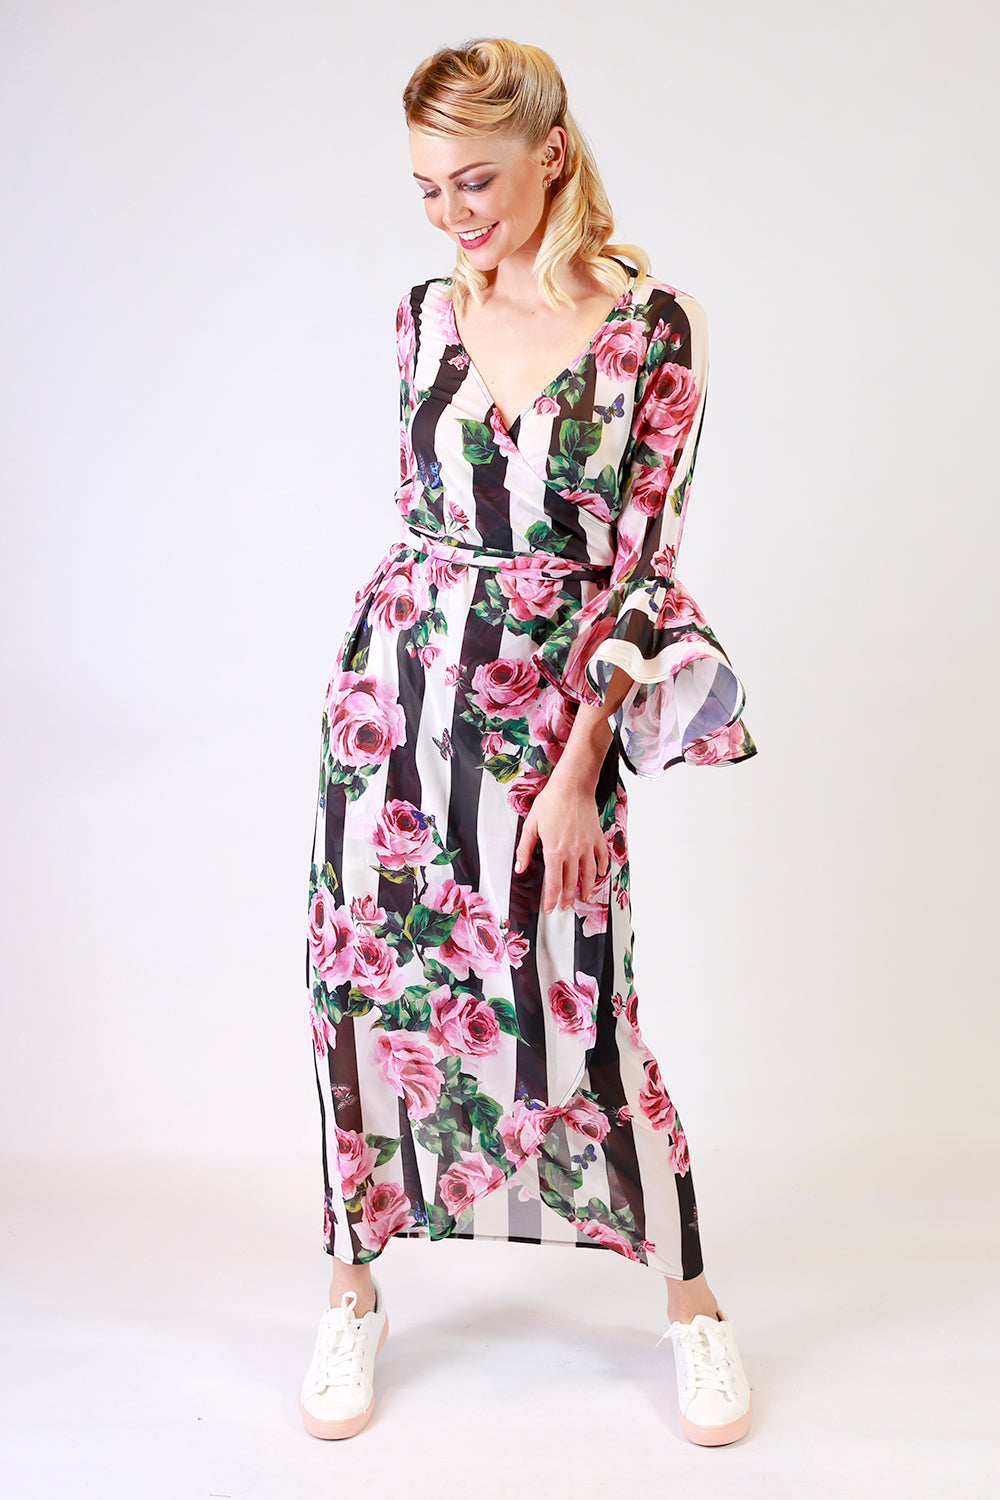 Carah Lily Wrap Dress | Wrap Dresses NZ | Occasion Dresses | Formal Dresses NZ | Evening Dresses NZ | Designer Fashion NZ | Floral Dresses NZ